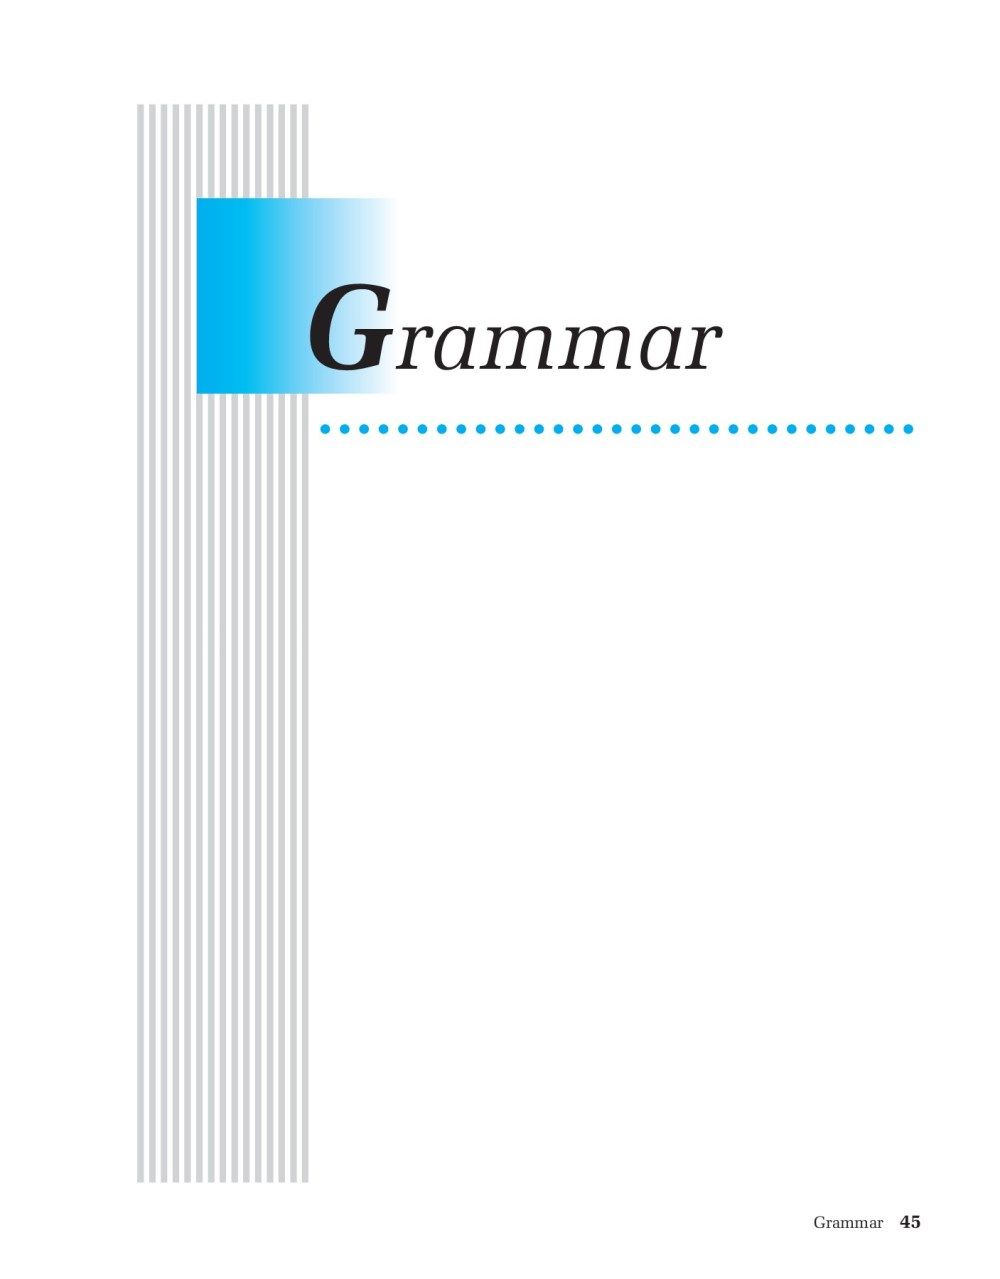 medium resolution of 4. Grammar-Flip eBook Pages 101 - 150  AnyFlip   AnyFlip